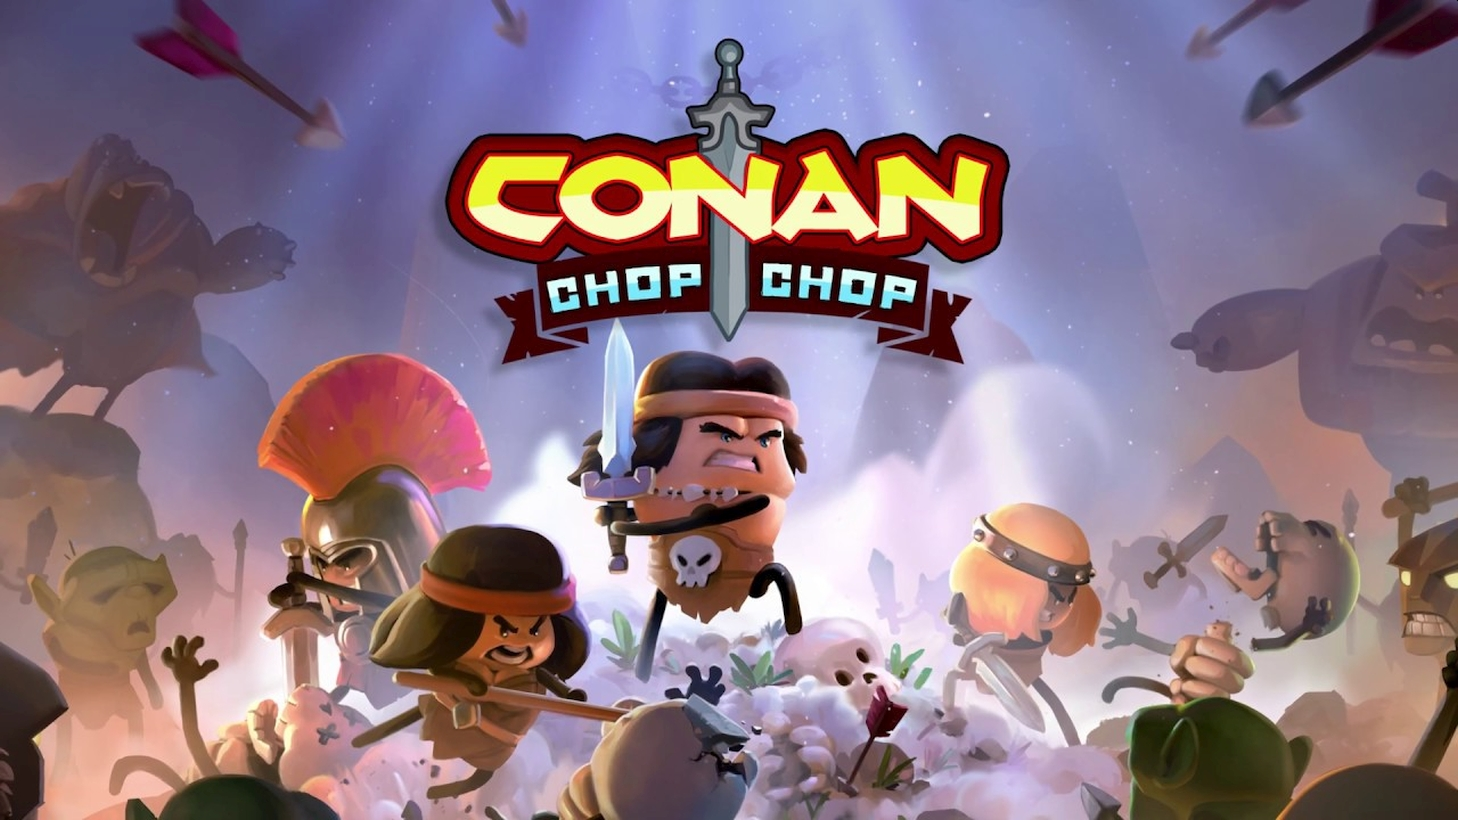 Conan Chop Chop Faces Another Delay With Planned Launch Now In Early 2021